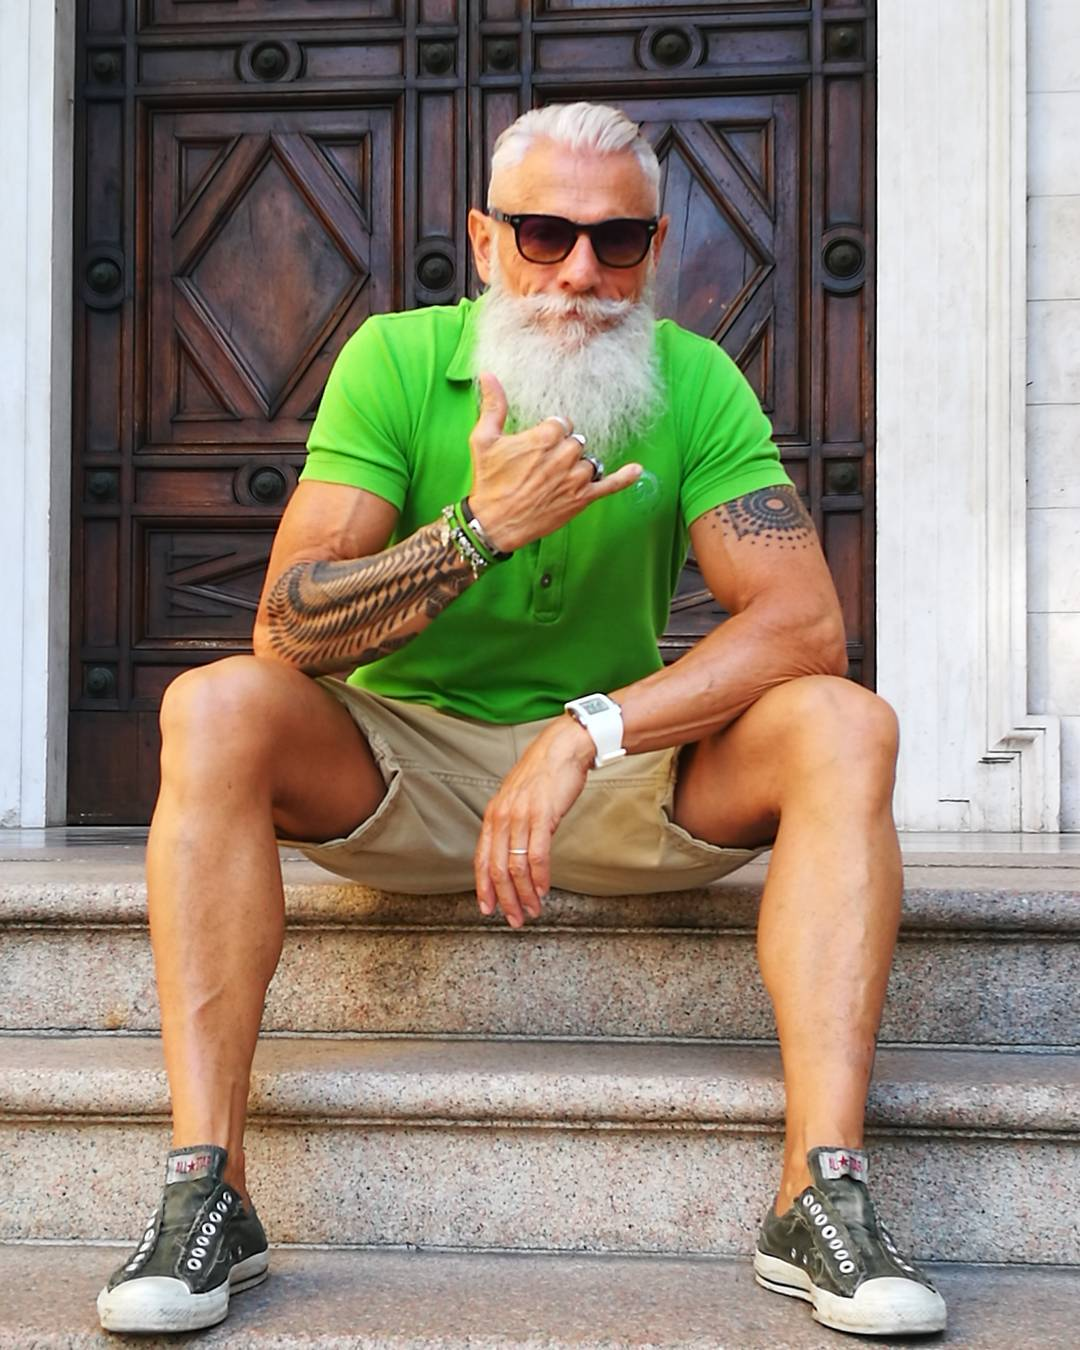 old man with green shirt